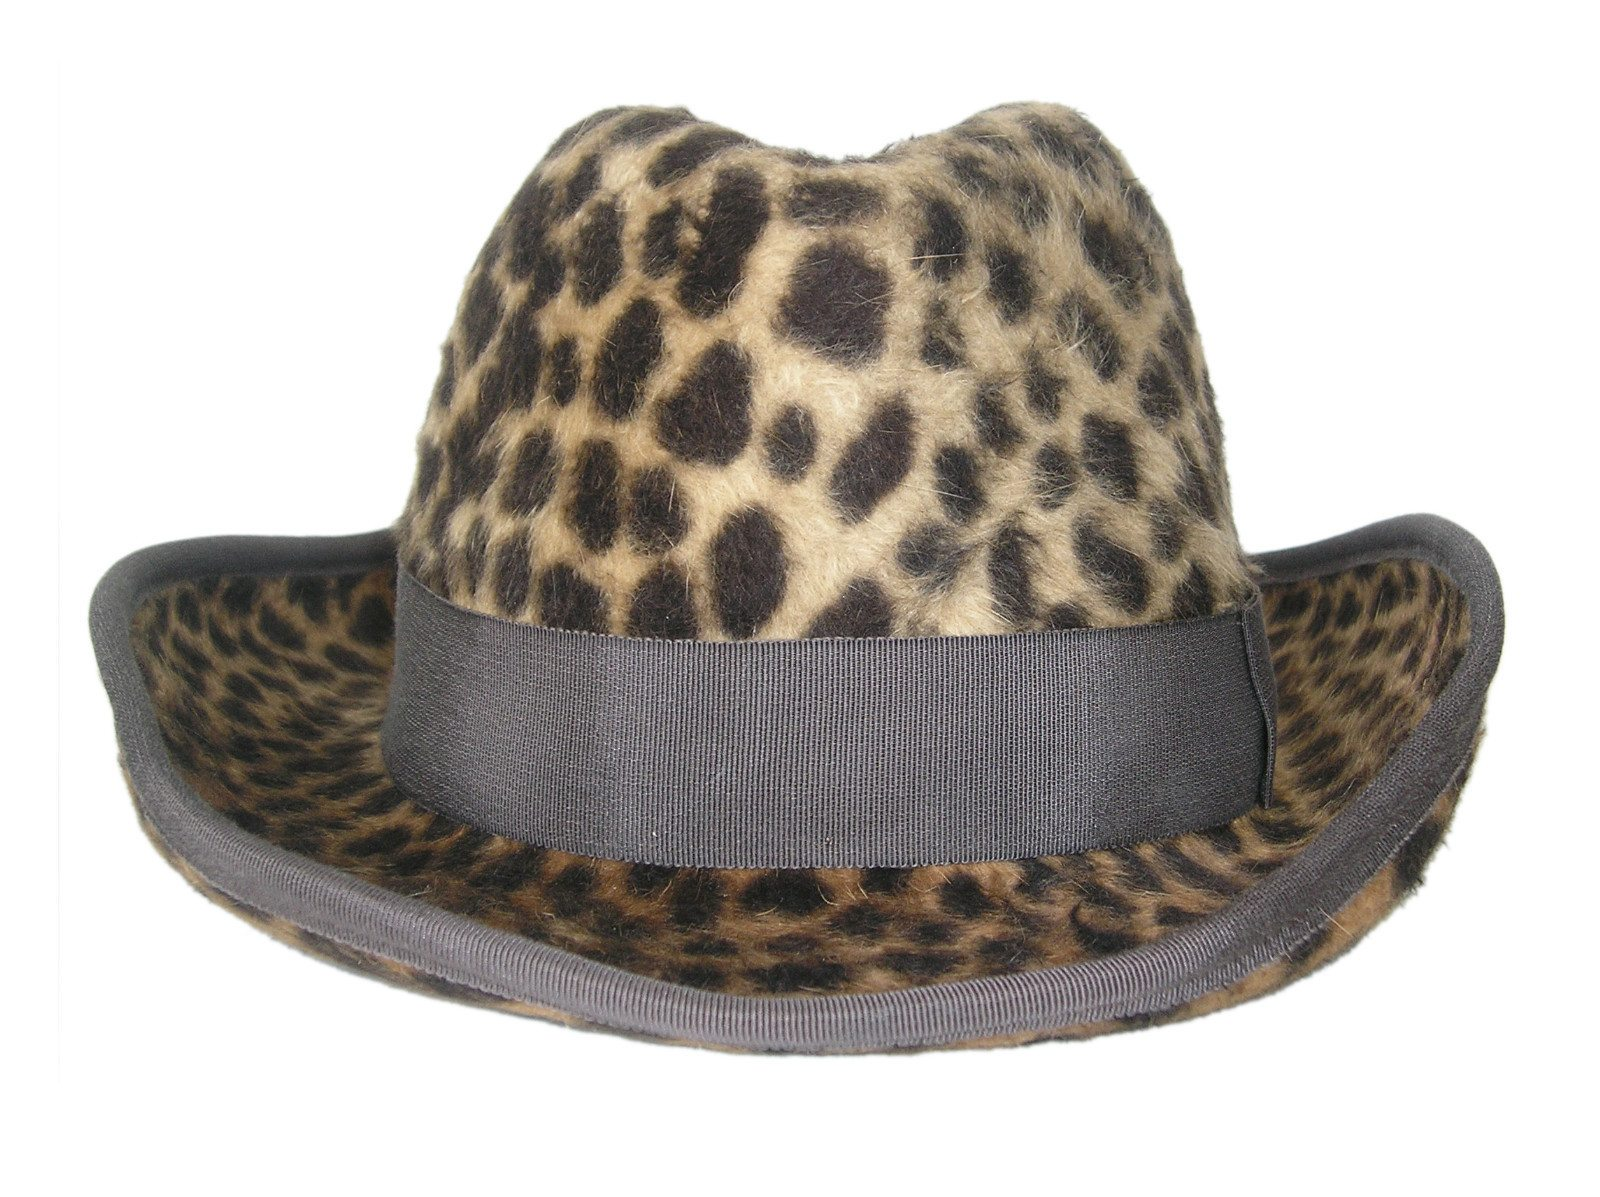 Annie Lennox Donates Her Leopard Print Fedora To St. Mungo's Wooly Hat Day Auction